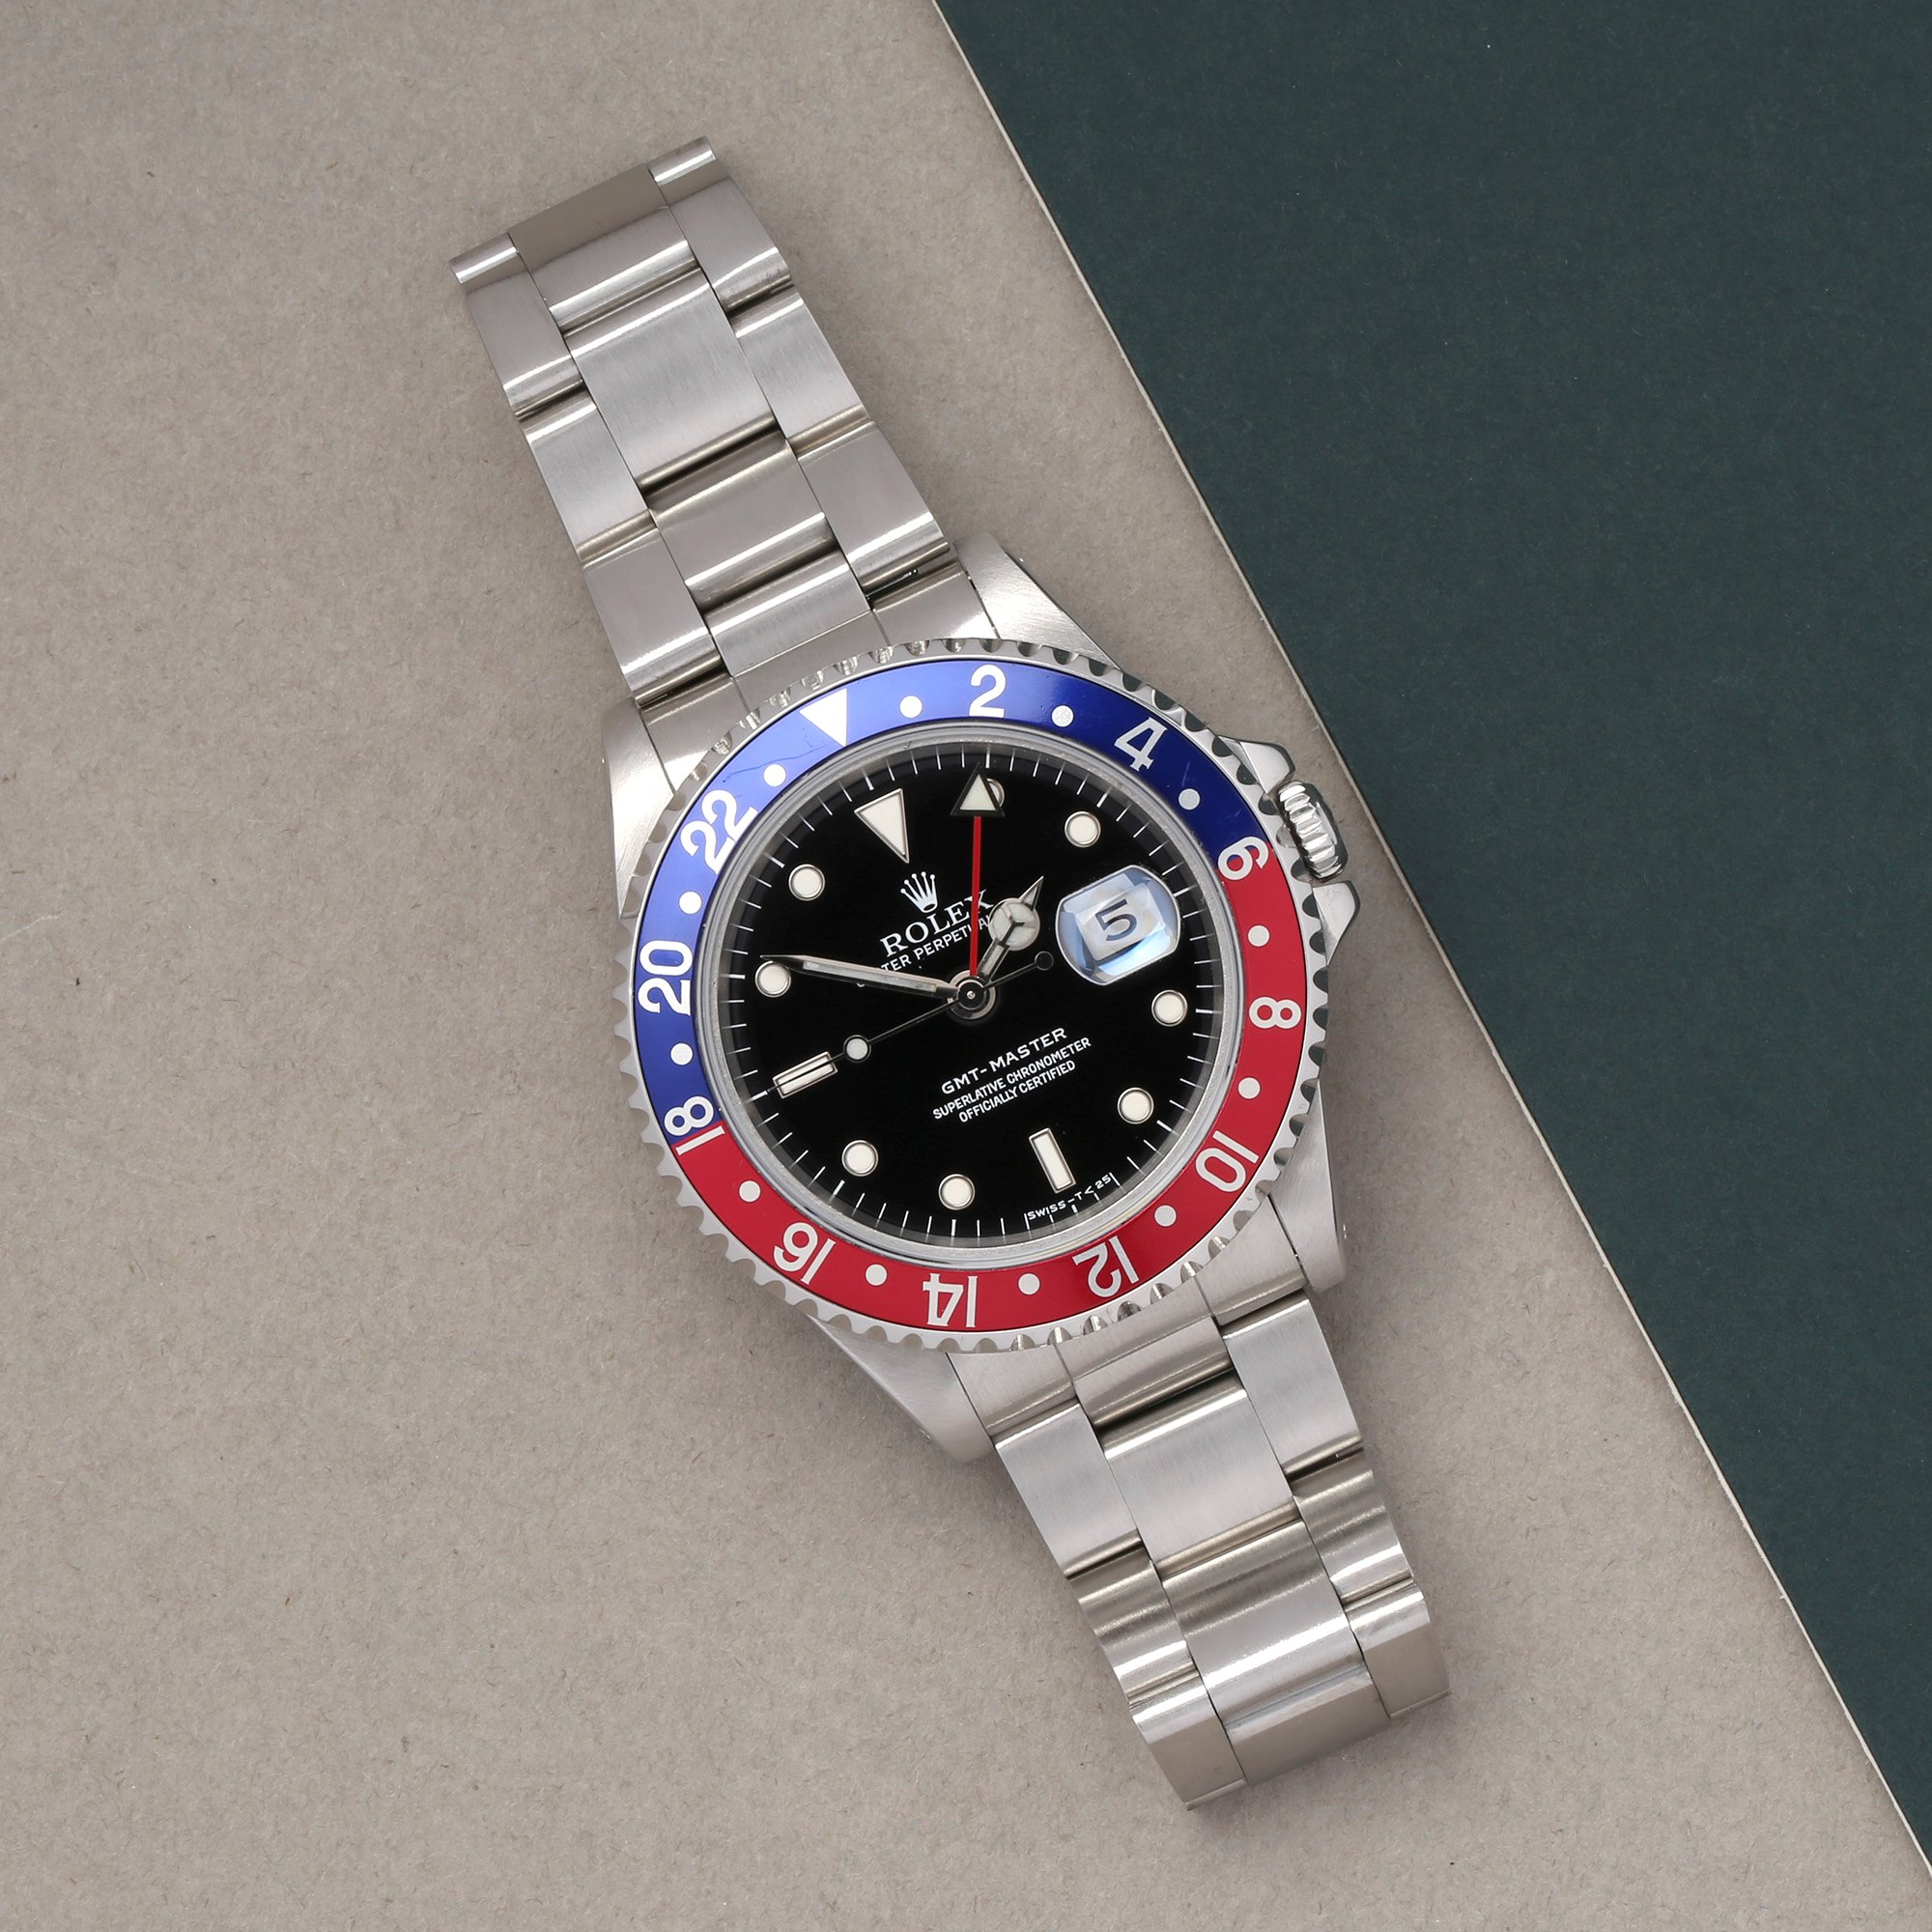 Rolex GMT-Master 16700 Men Stainless Steel Pepsi Serif Fat Font Watch - Image 11 of 11